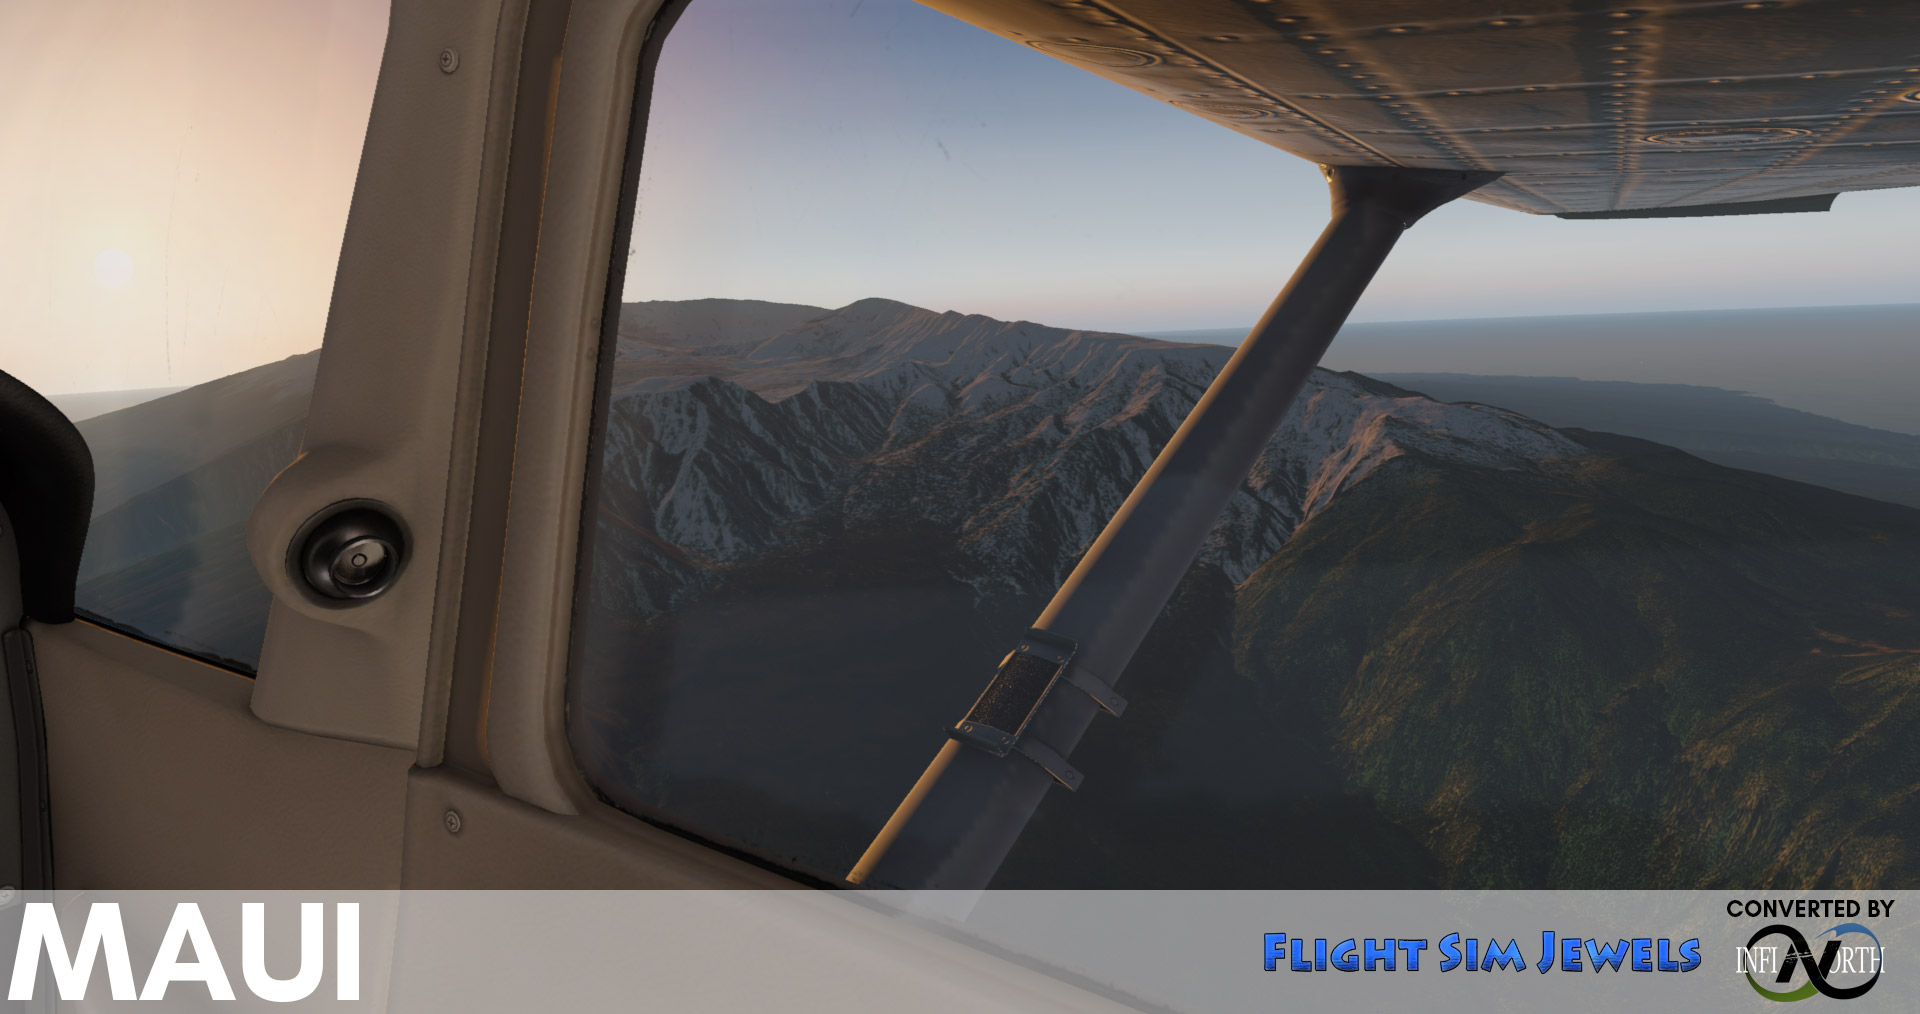 Best training helicopter? - The X-Plane General Discussions Forum